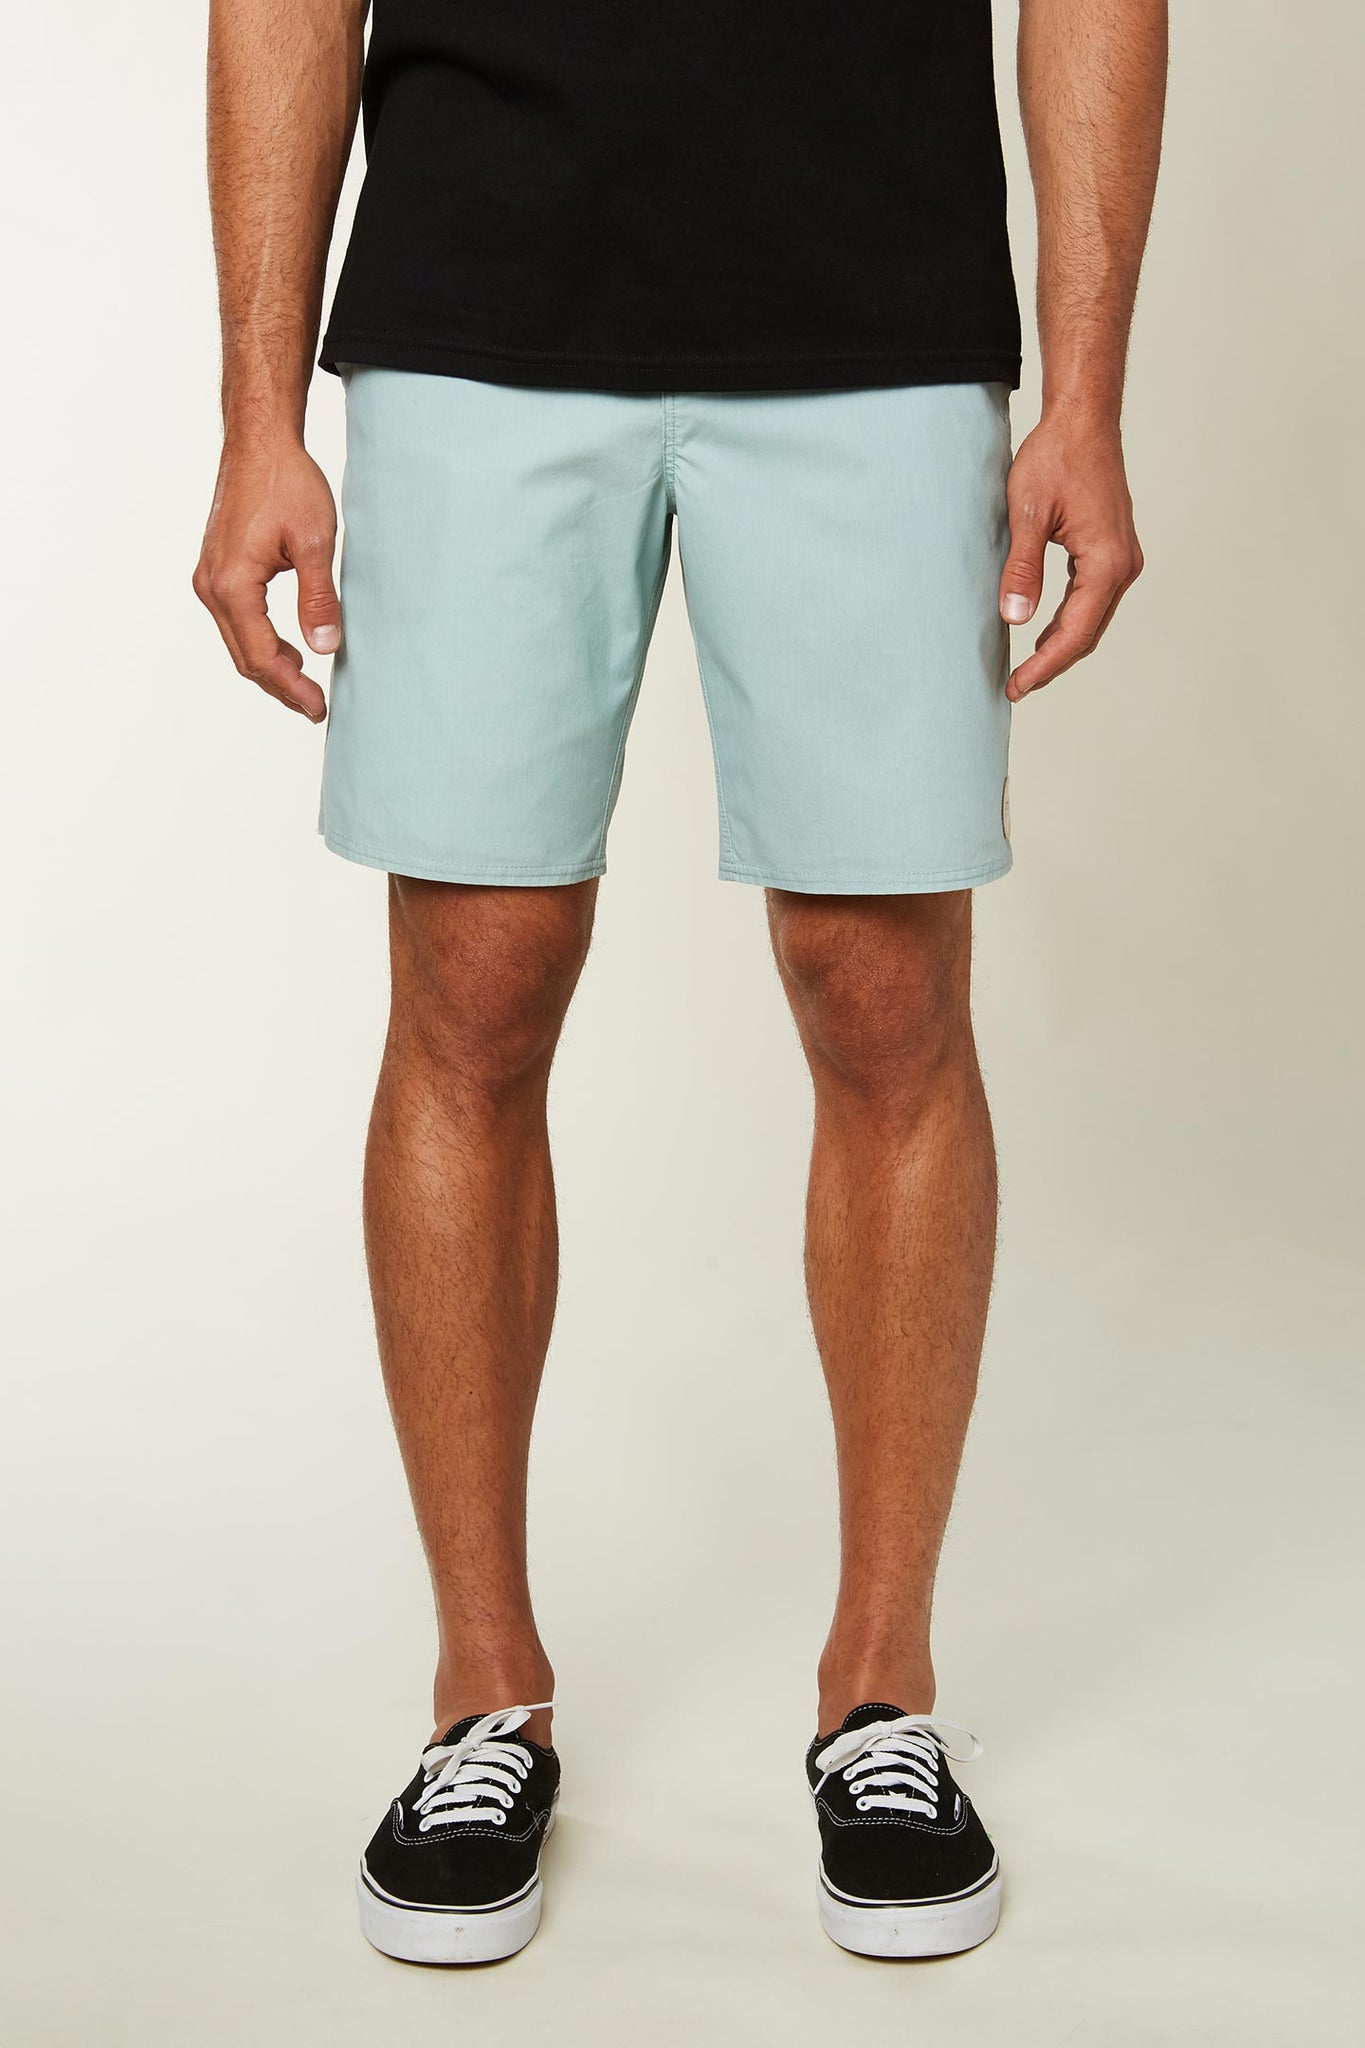 Faded Cruzer Boardshorts | O'Neill Clothing USA